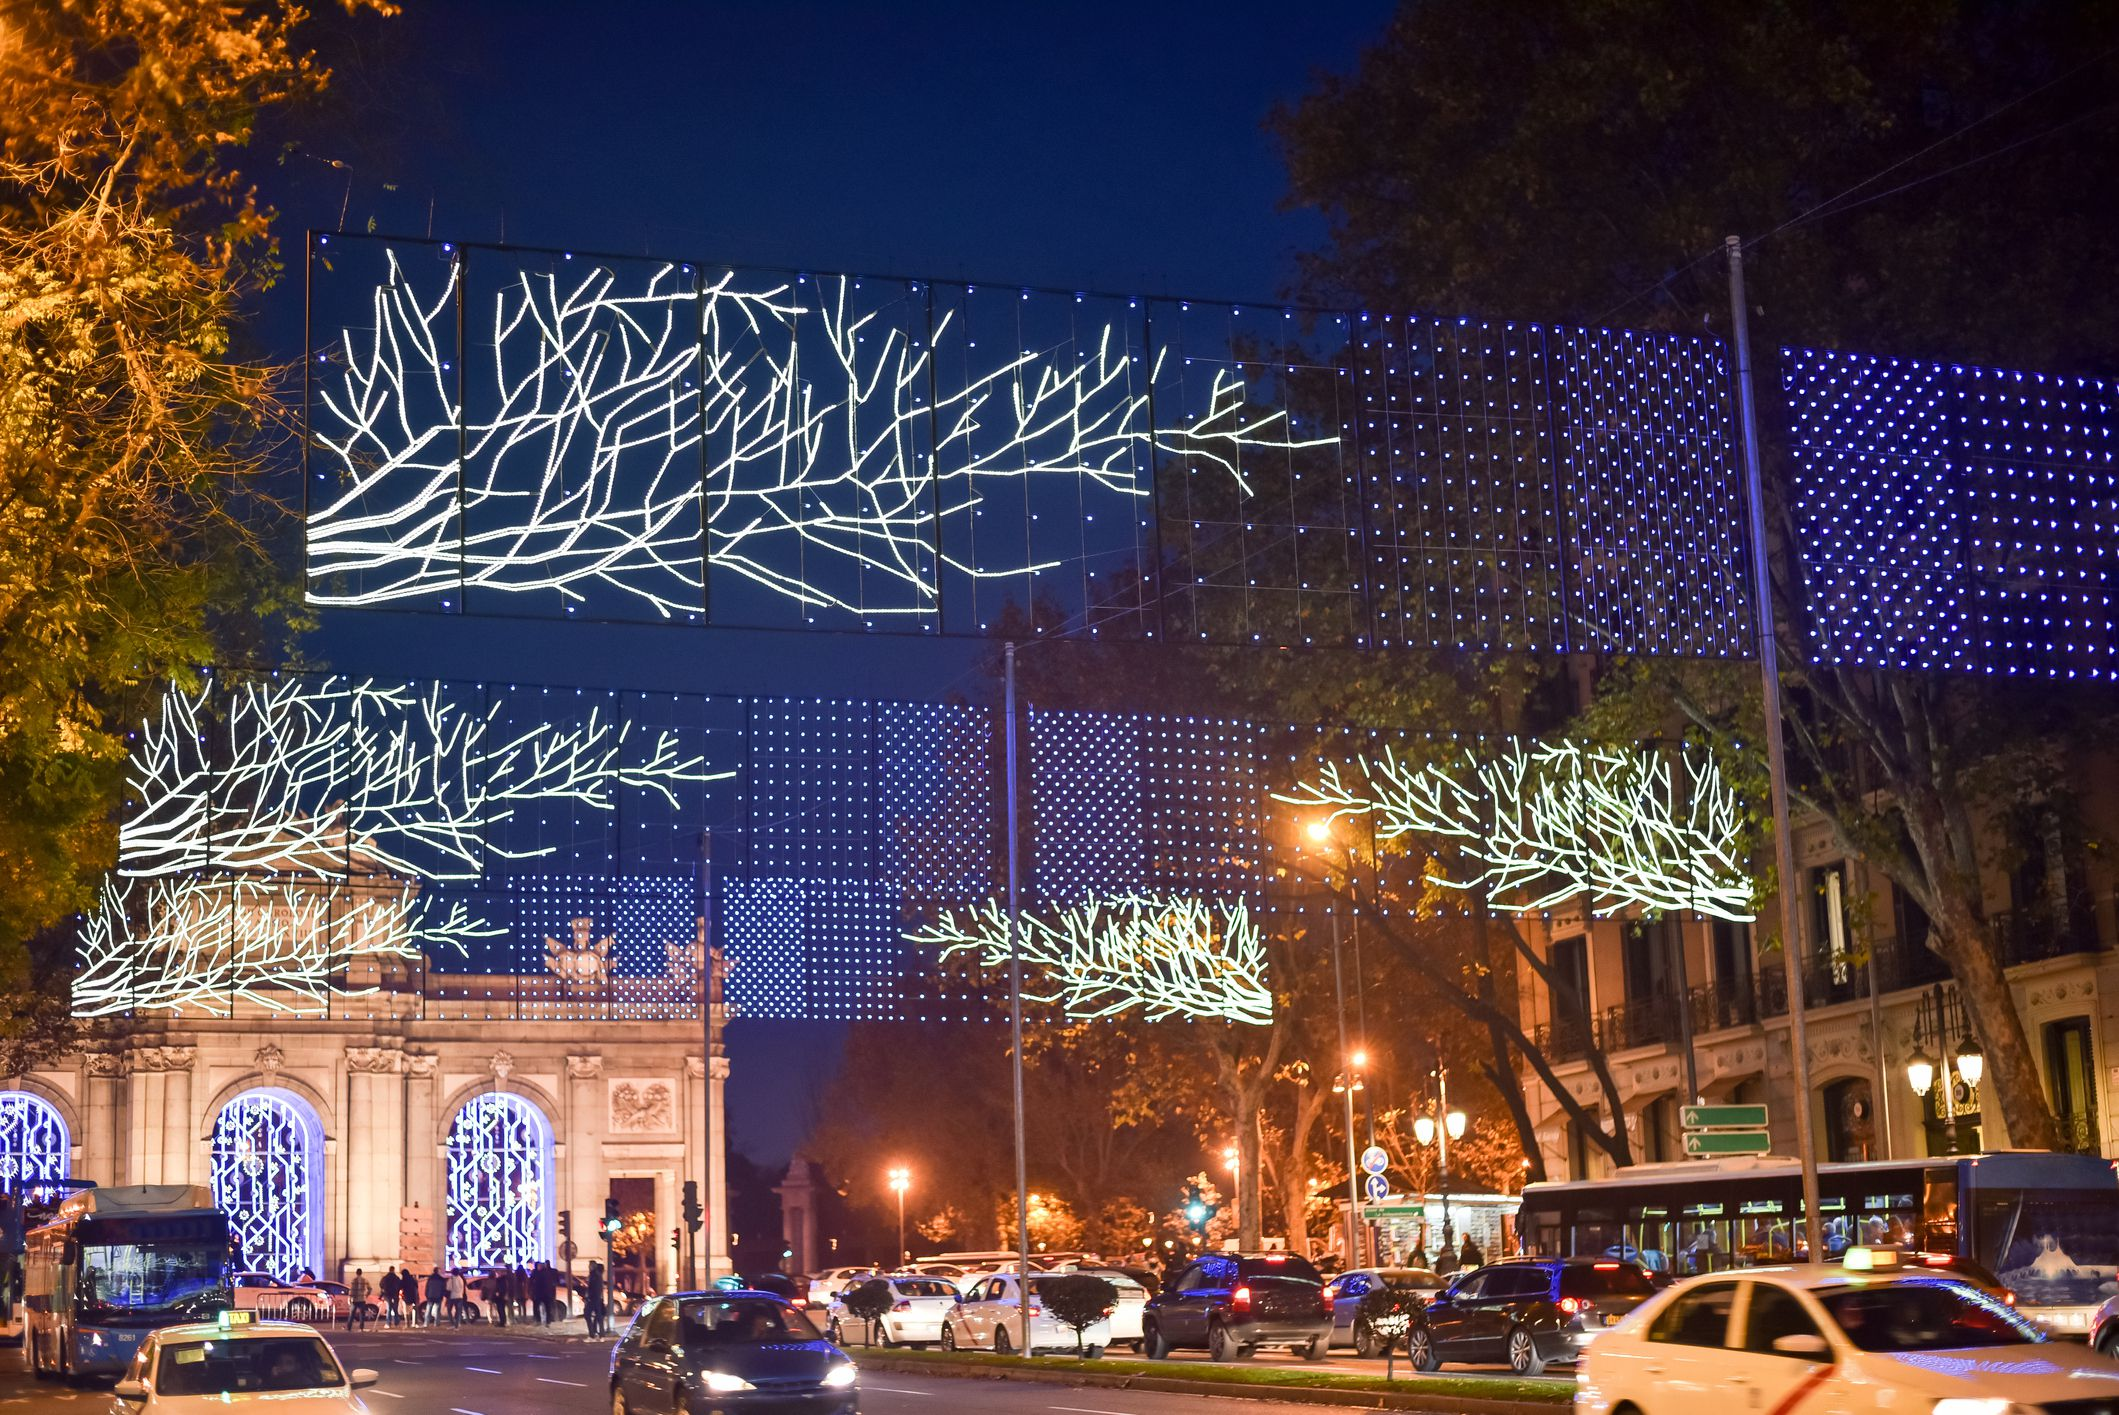 Christmas decorations in Madrid by night